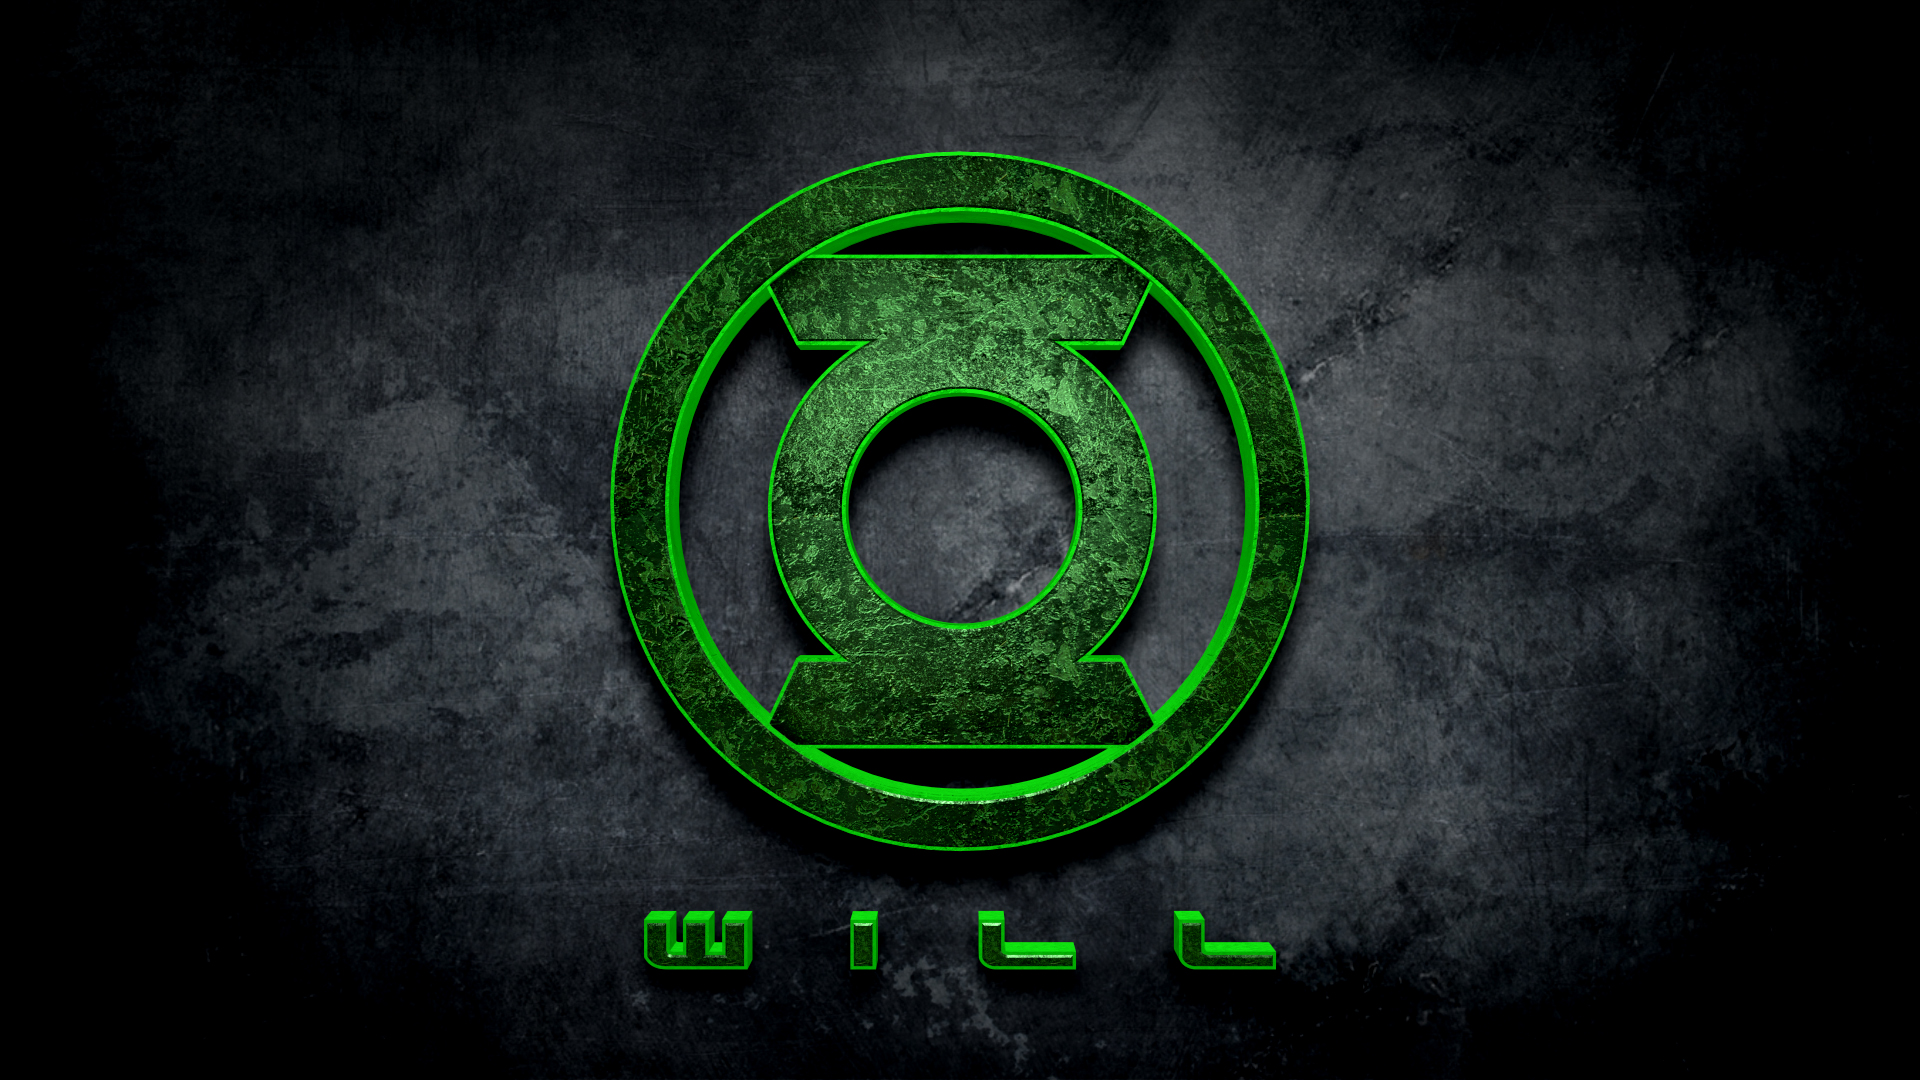 Lantern corps beloeil jones green lantern biocorpaavc Gallery